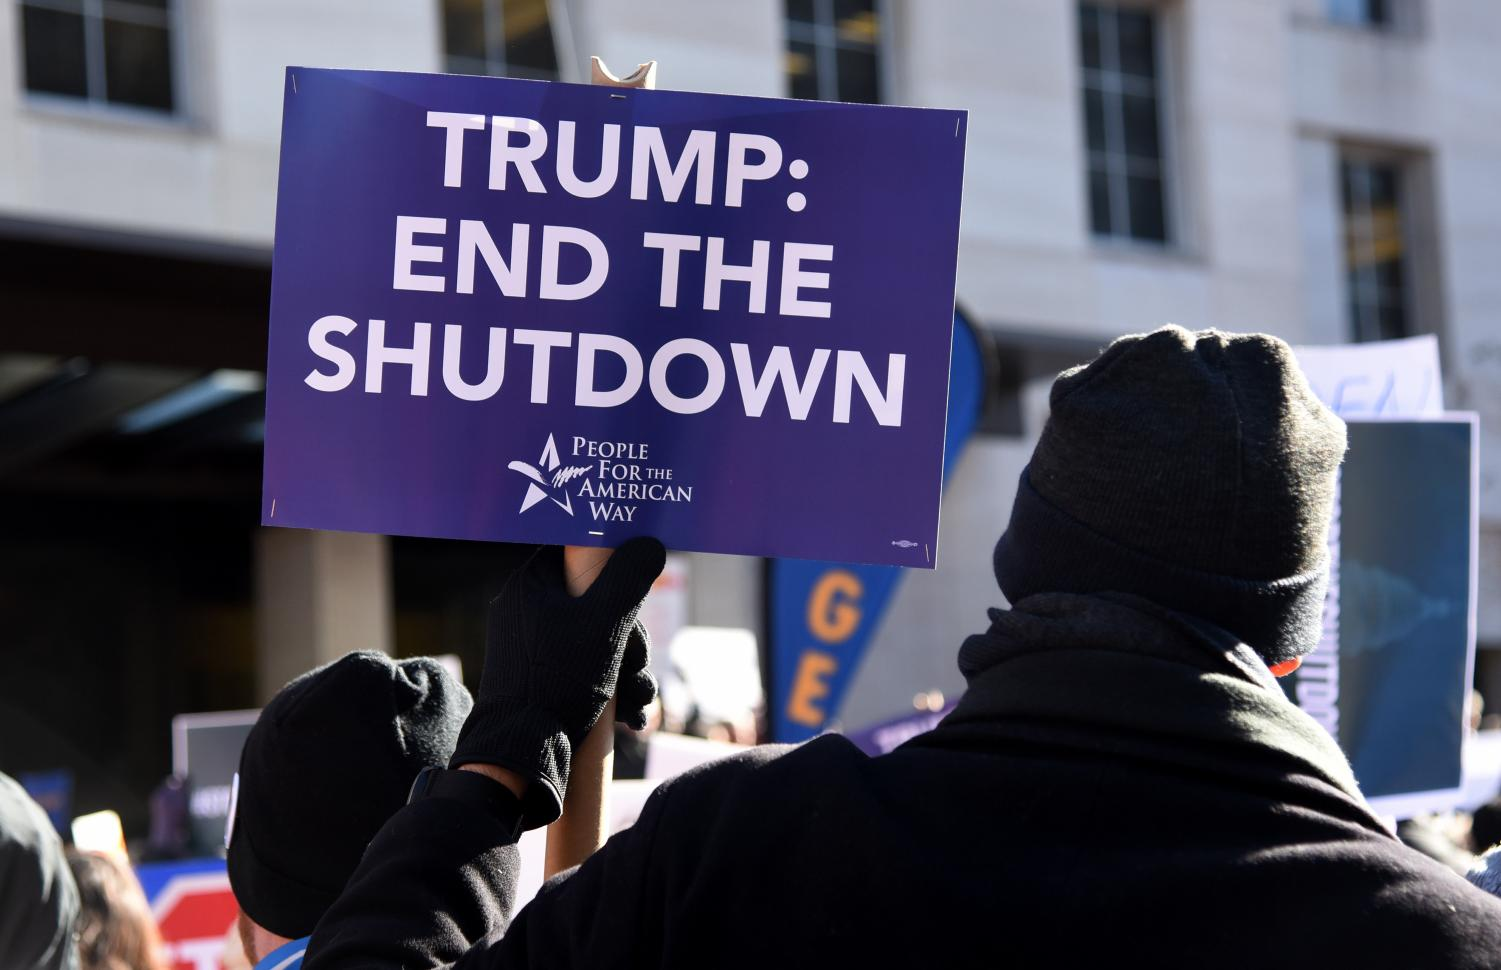 On the 20th day of a partial government shutdown, furloughed federal workers, contractors and union representatives gathered before marching to the White House to demand that President Trump reopen the government on Jan. 10, 2019 in Washington, D.C.